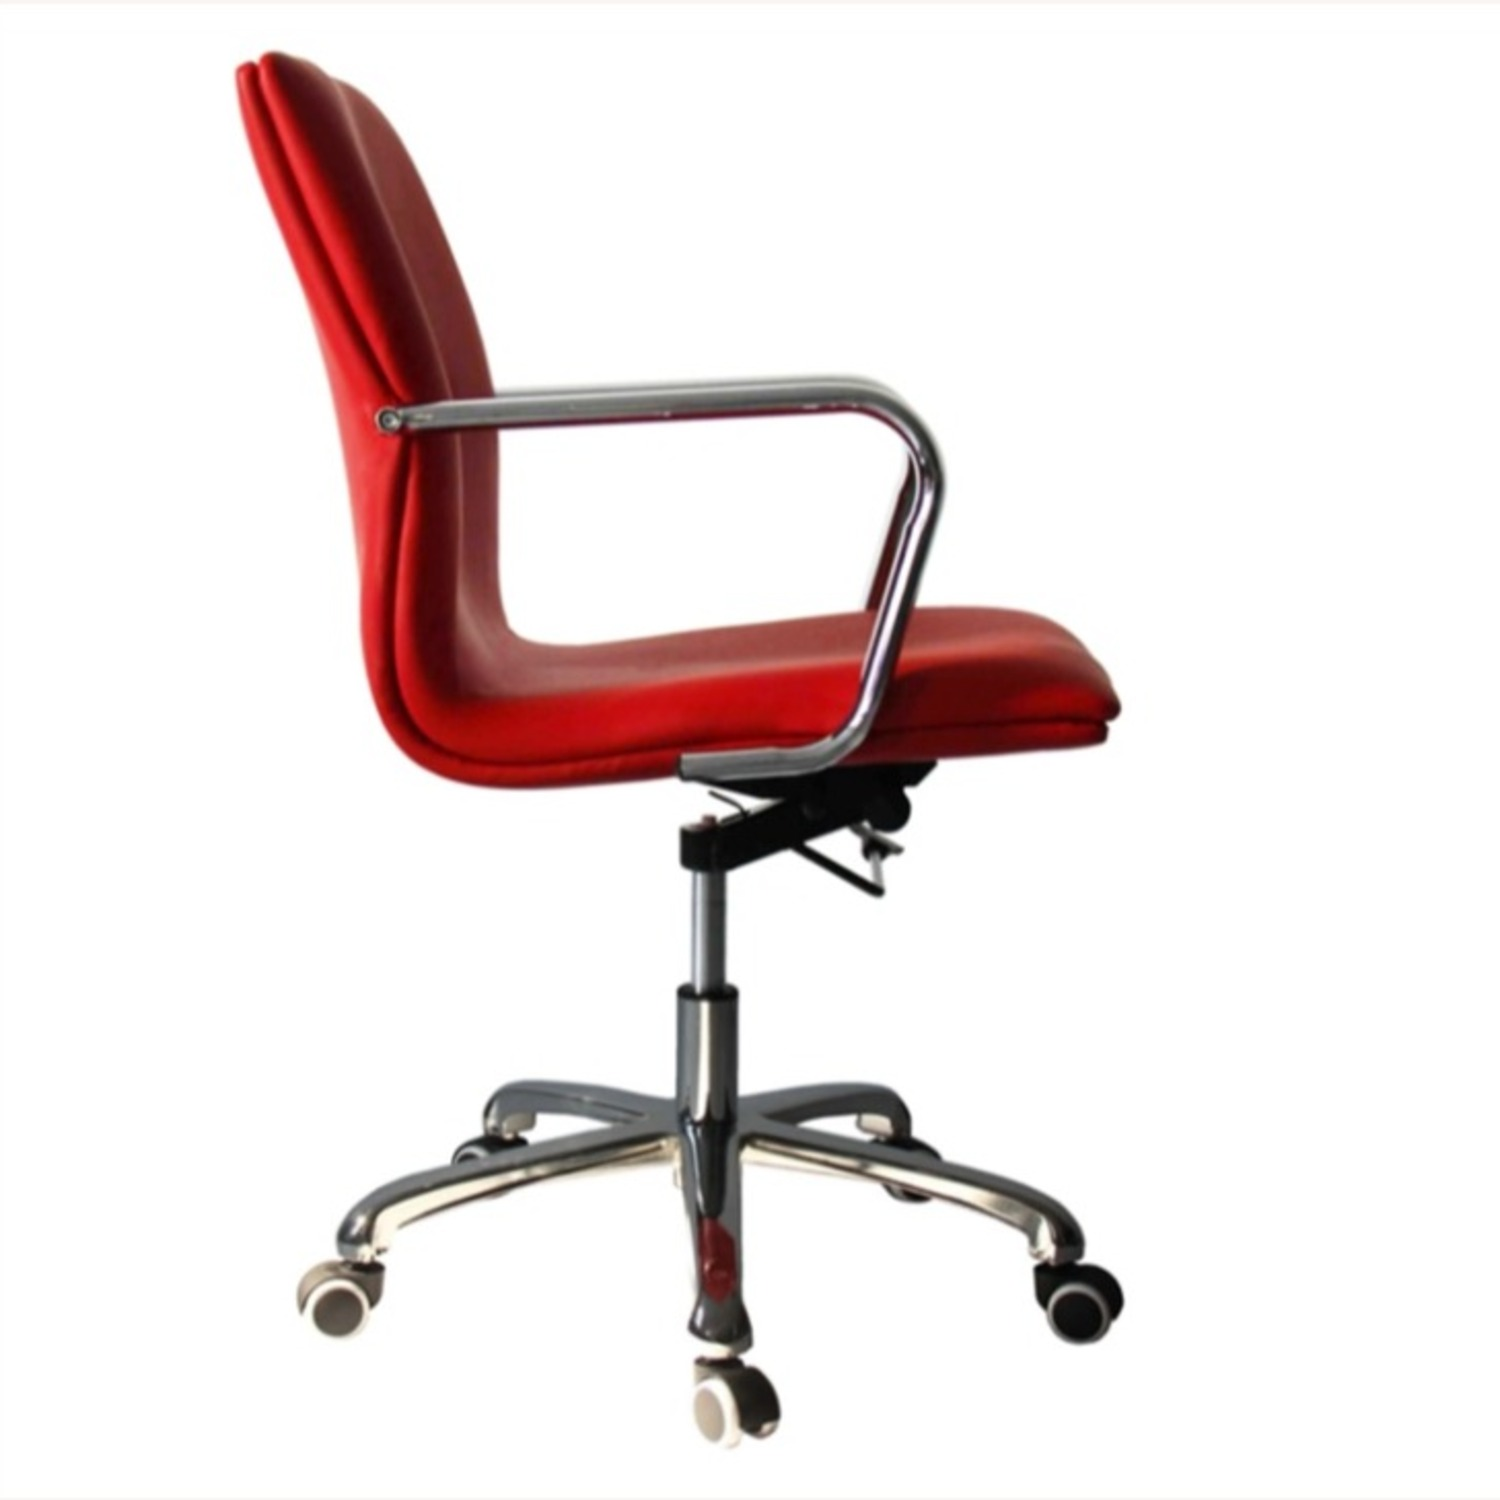 Office Chair In Mid-Back Red Leatherette Finish - image-0